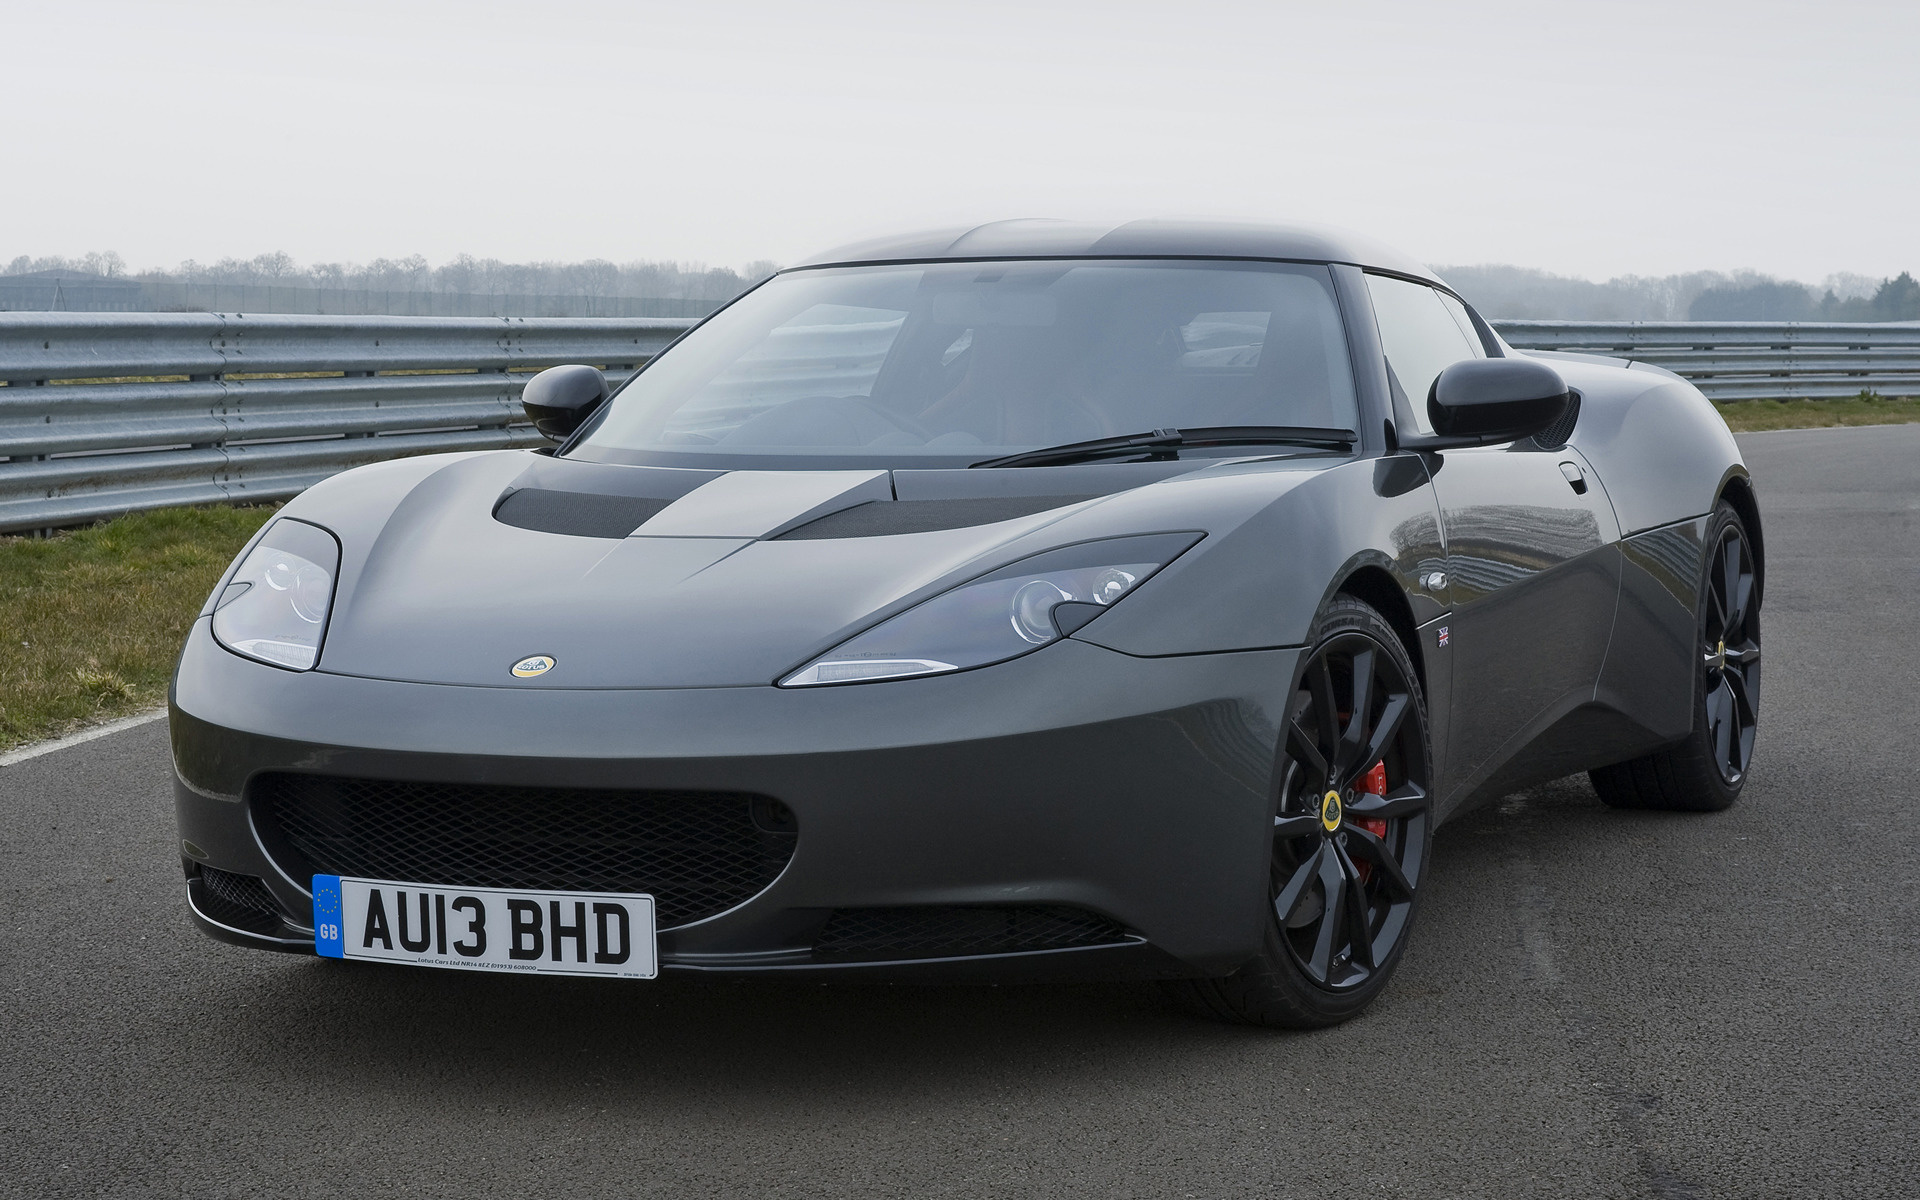 https://www.carpixel.net/w/936f5453e926ced008acab6e80662fc4/lotus-evora-s-sports-racer-car-wallpaper-41996.jpg